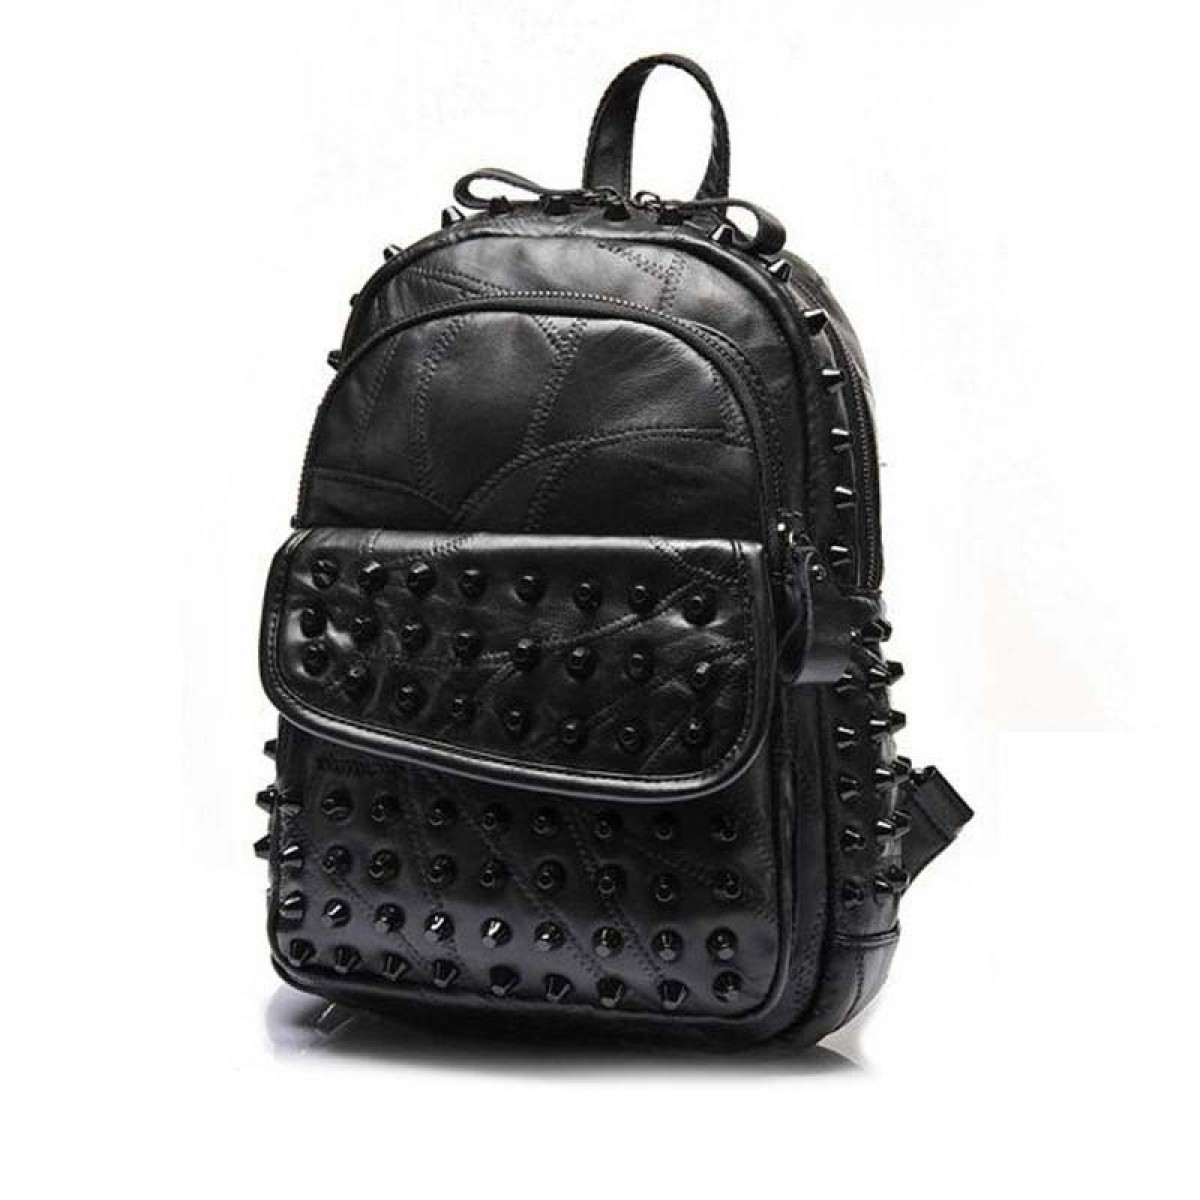 Spiked Backpack Punk Chic Black Leather   LATICCI